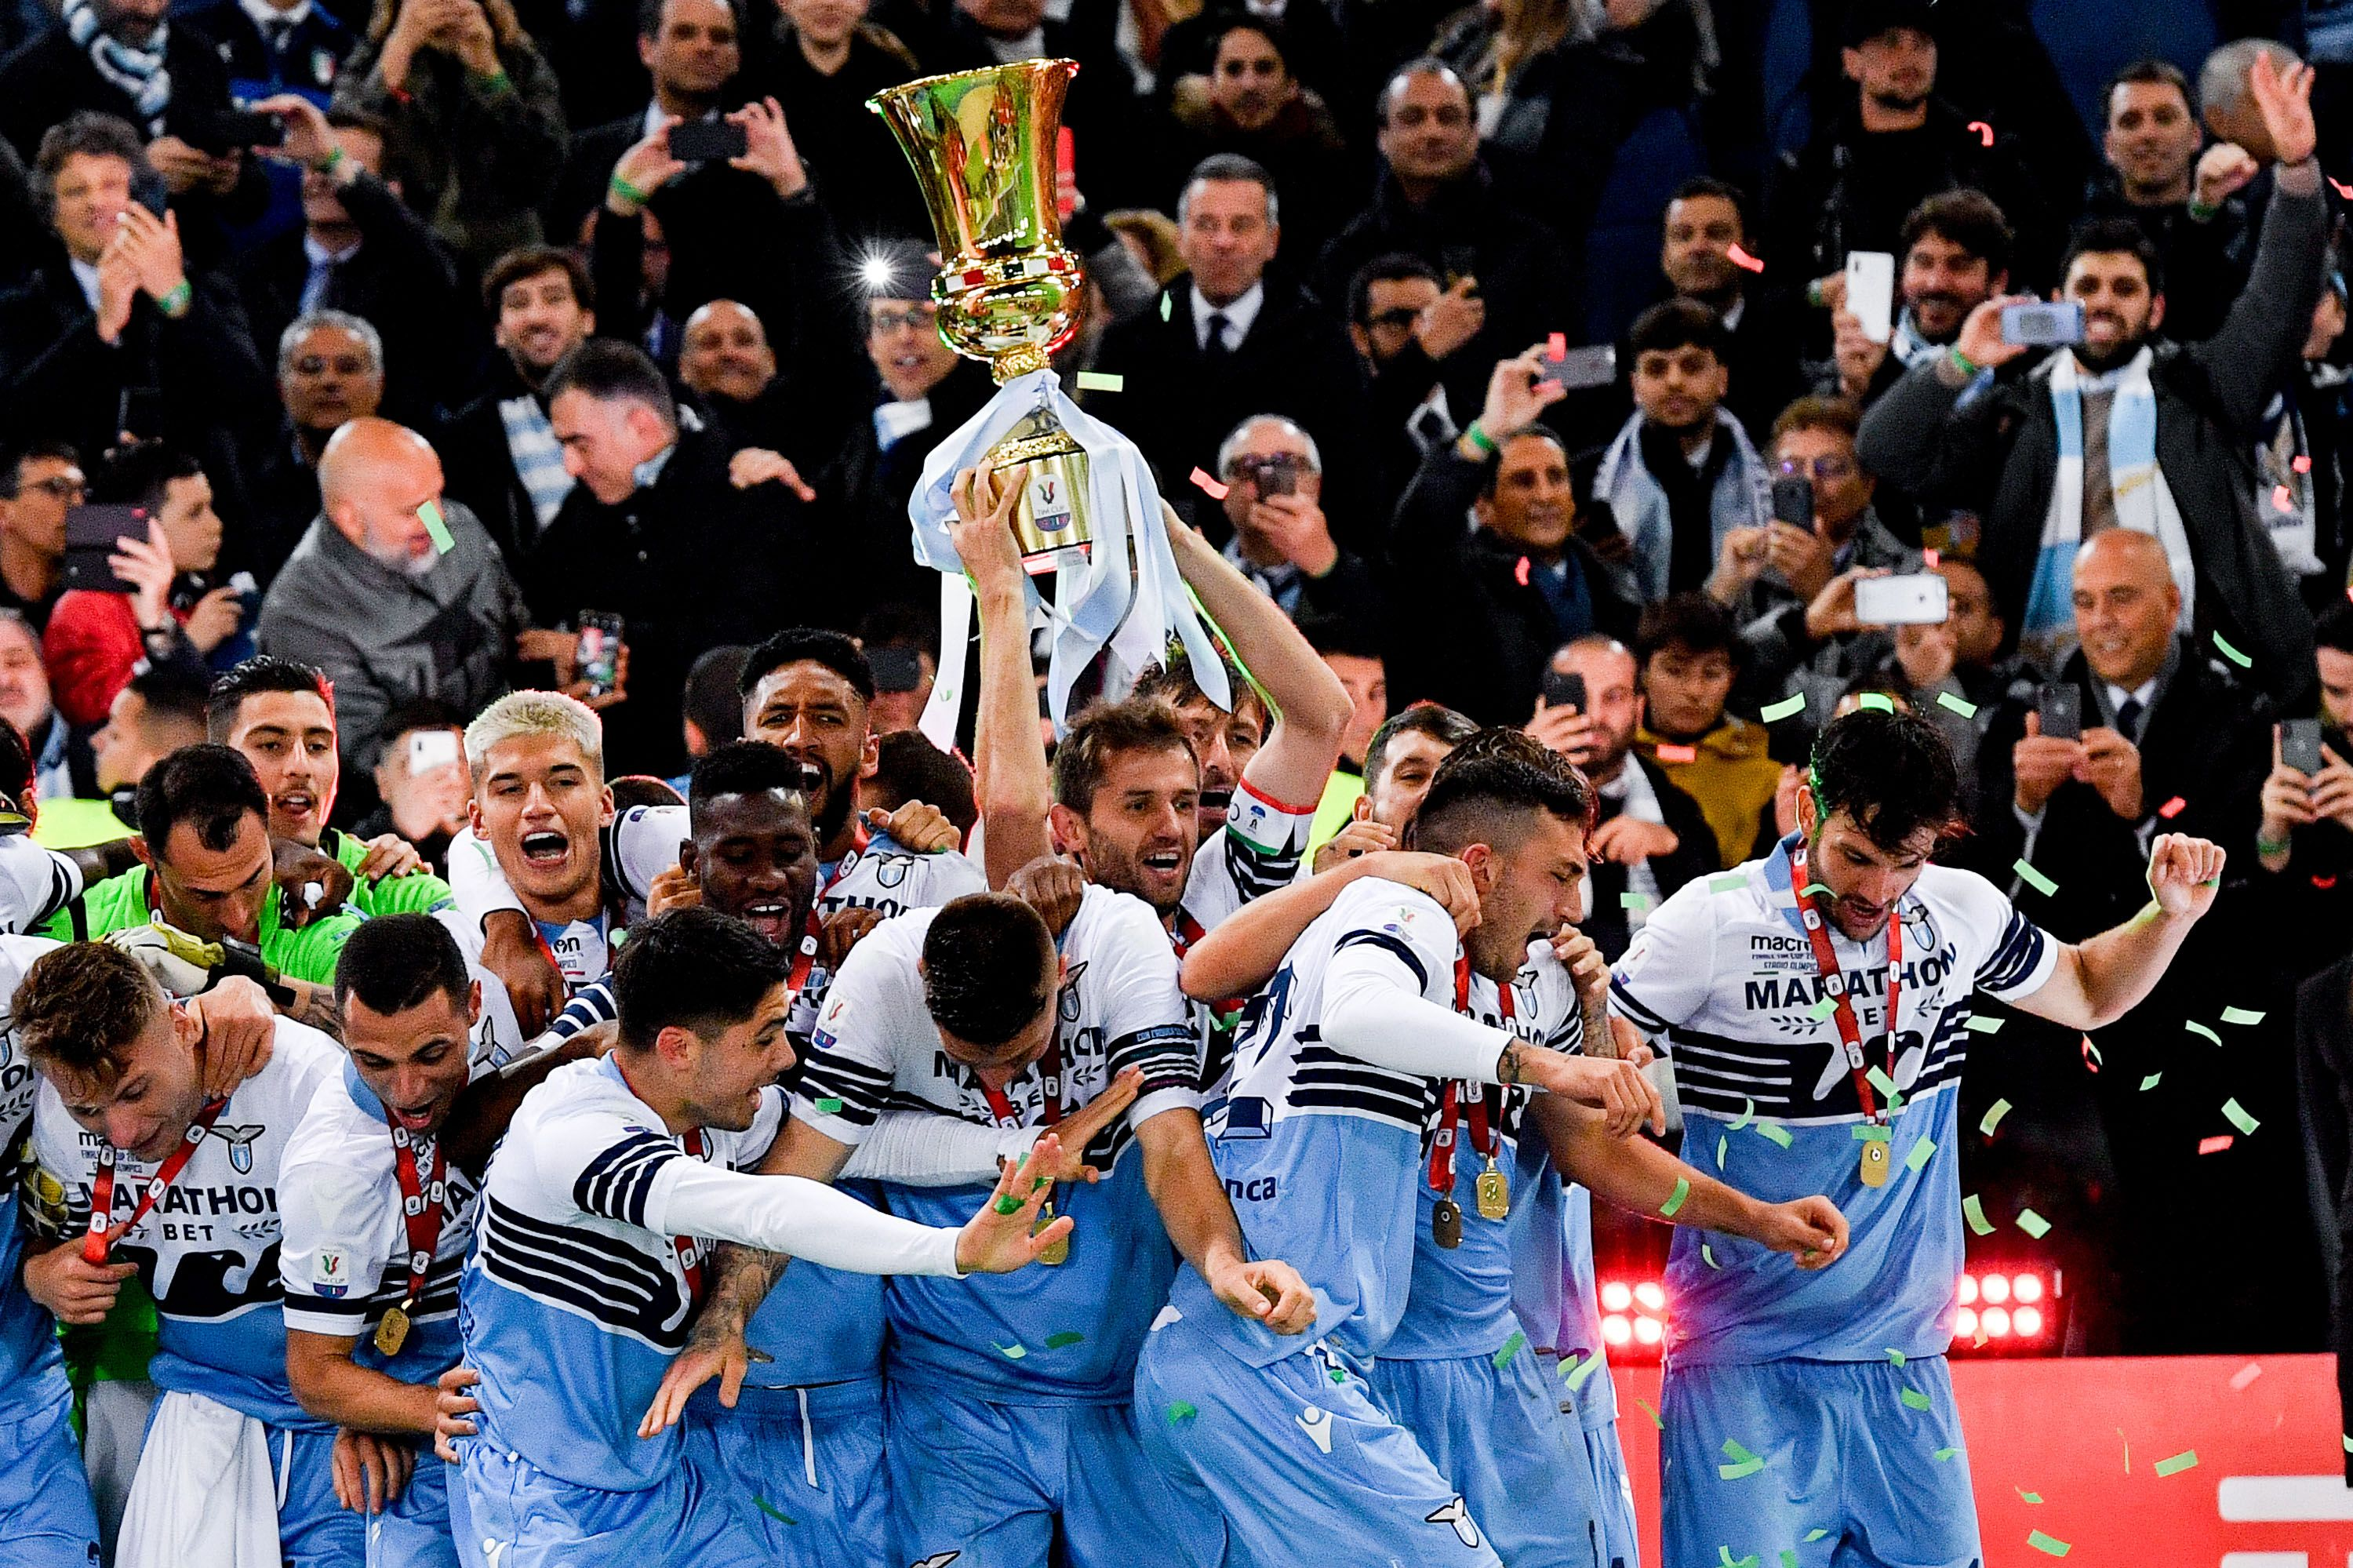 Senad Lulic of SS Lazio celebrates with his teammates with the cup at the end of the Italian Cup Final match between Atalanta and Lazio at Stadio Olimpico, Rome, Italy on 15 May 2019. Photo by Giuseppe Maffia.//UKSPORTSPICS_1813.783/1905161237/Credit:Maffia/UK Sports Pics/SIPA/1905161239